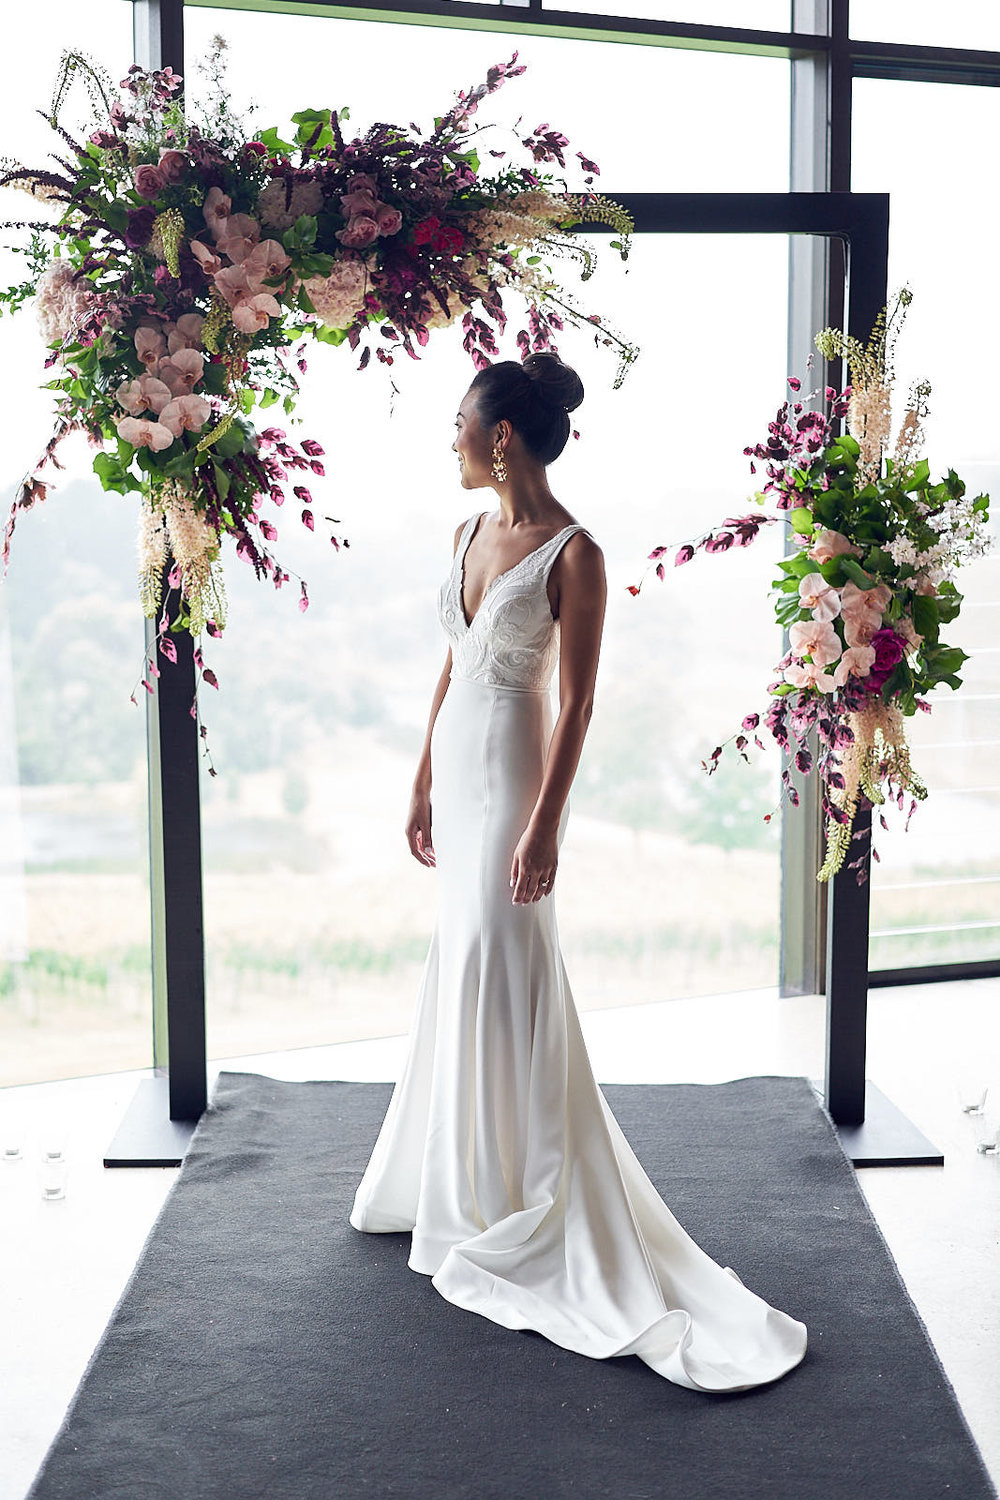 J & S Port Phillip Estate Wedding by Lost In Love Photography. #bride